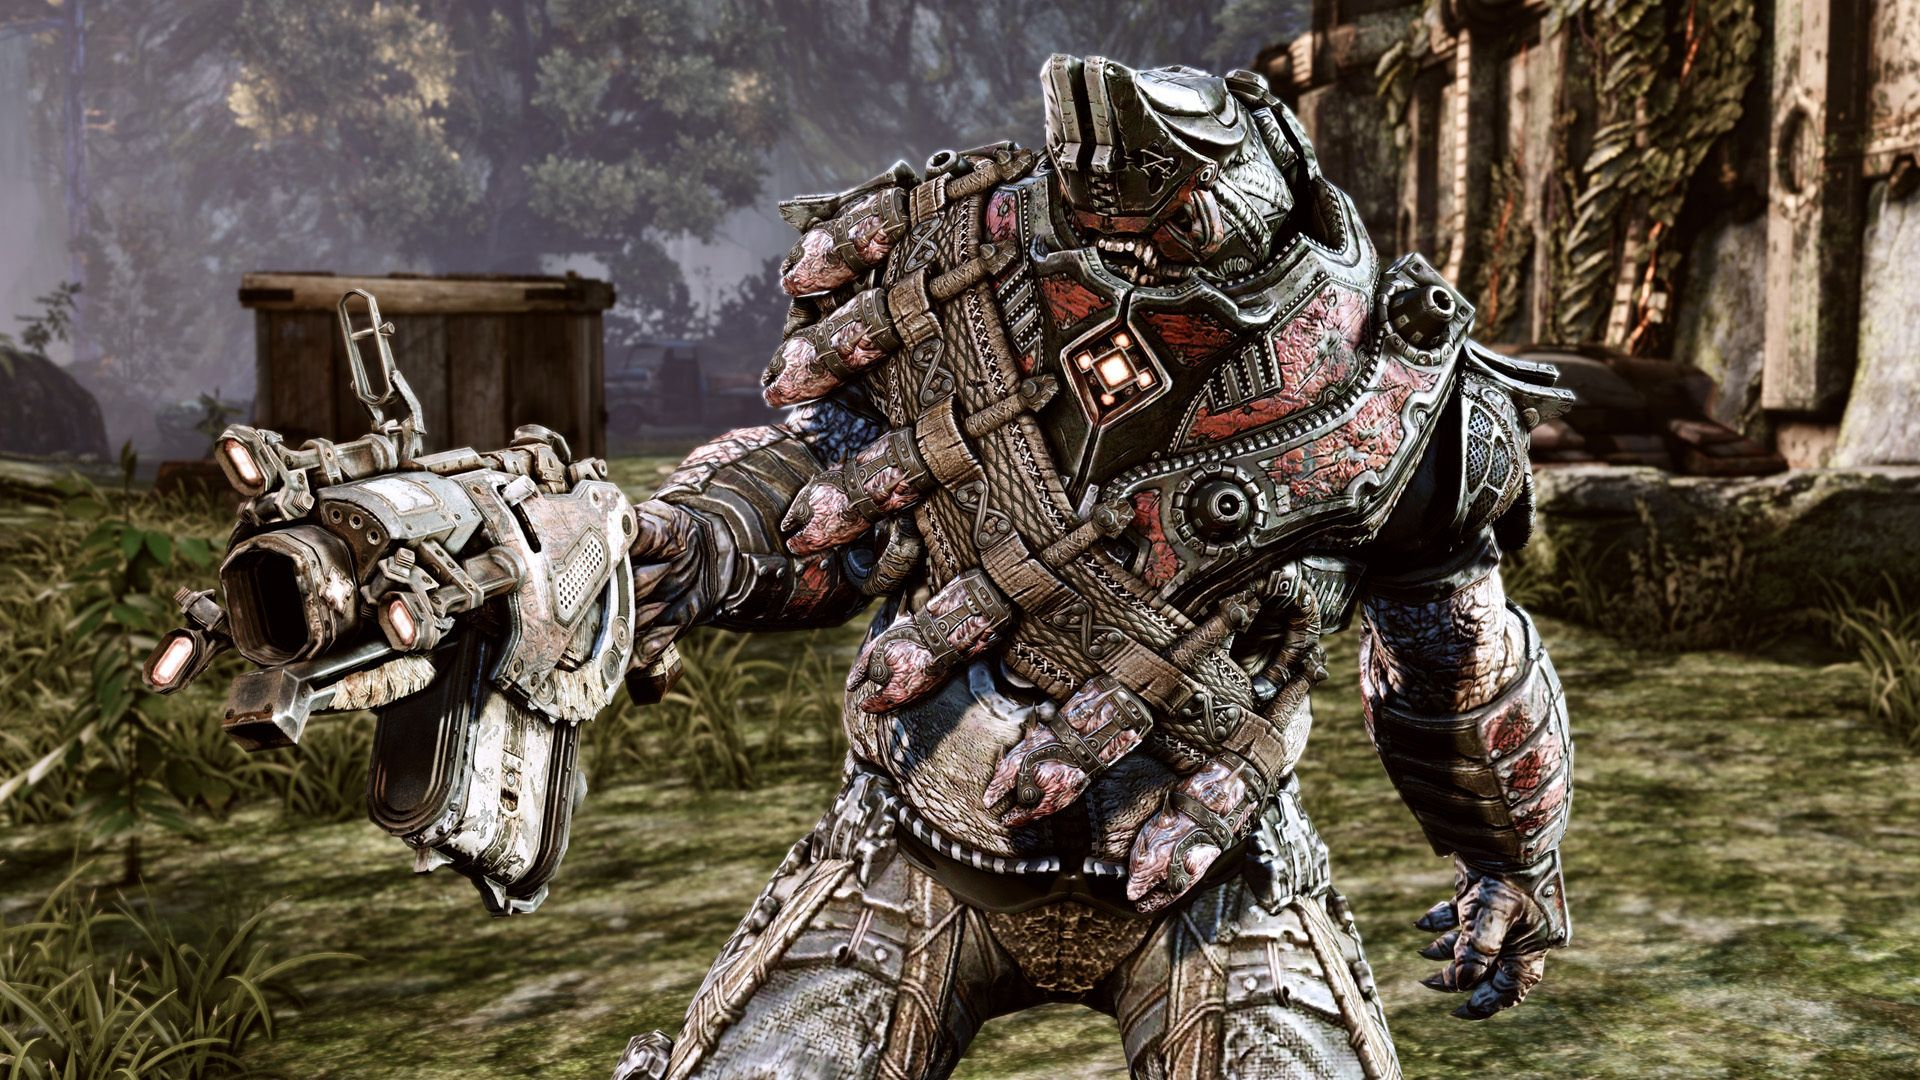 gears of war 3 monster weapon - HD wallpaper desktop backgrounds